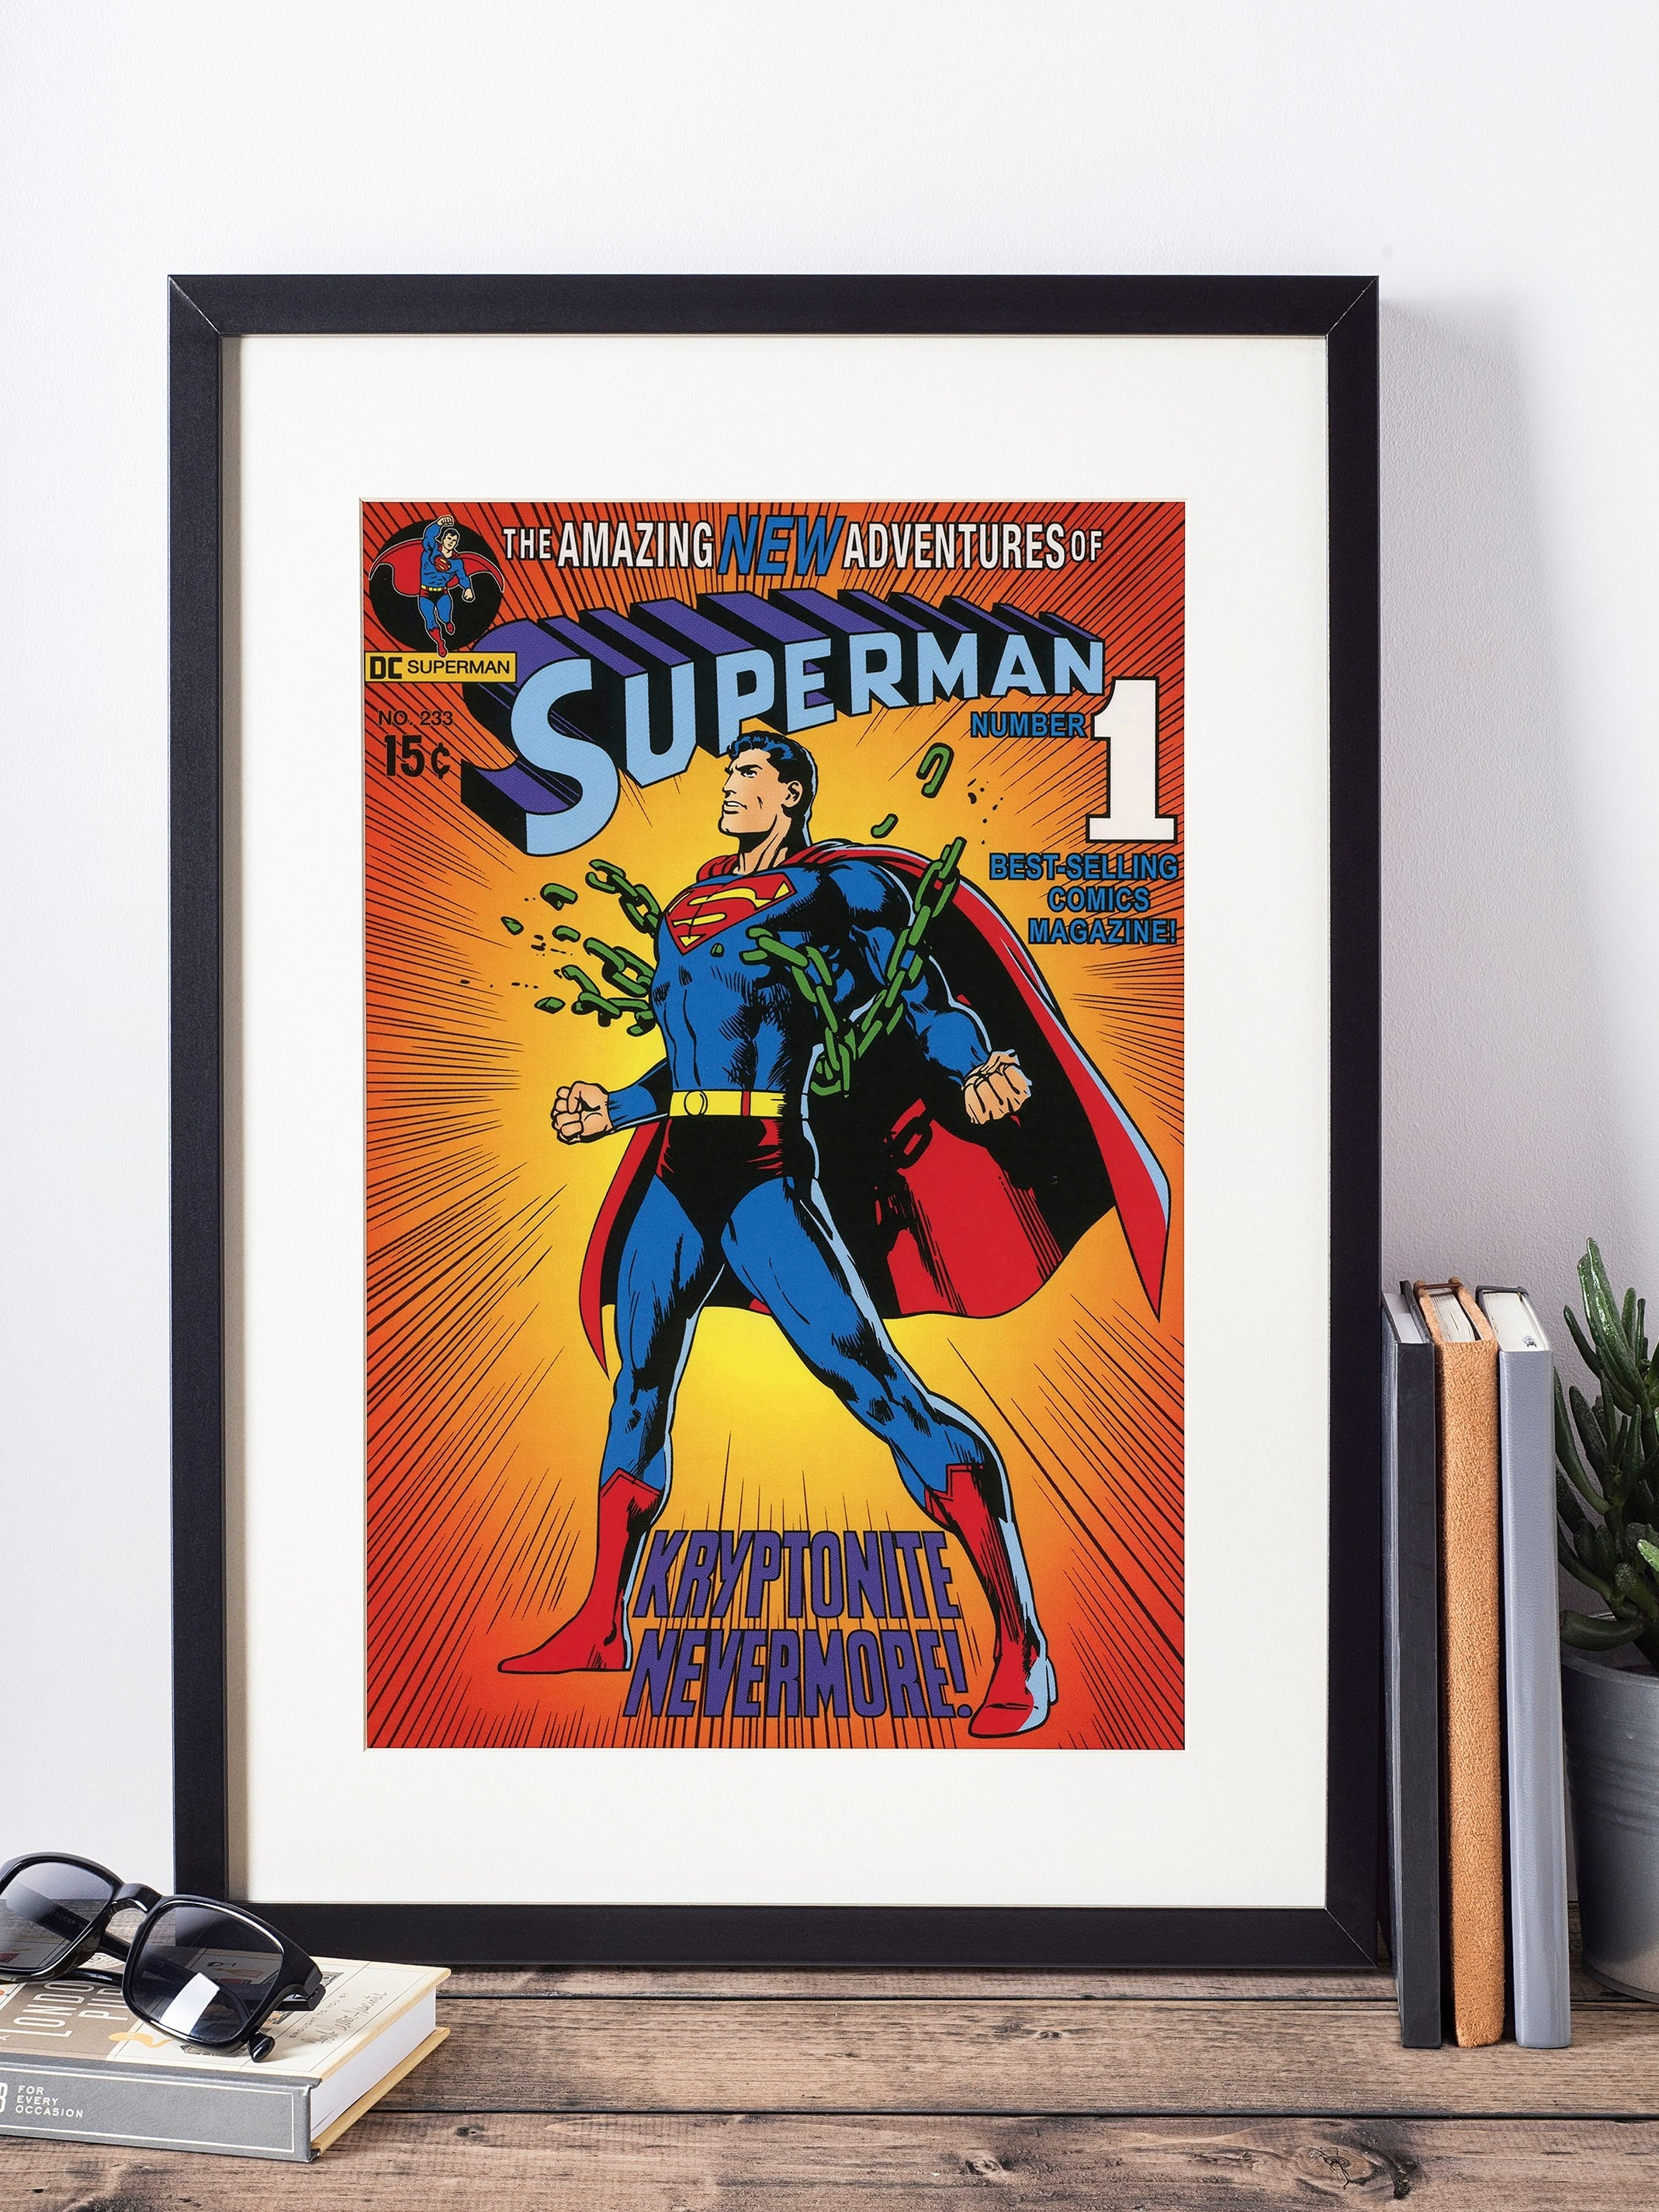 Superman Poster / Superhero Wall Art / Superman Art / Nerd Gift Regarding 2017 Superhero Wall Art (Gallery 5 of 20)